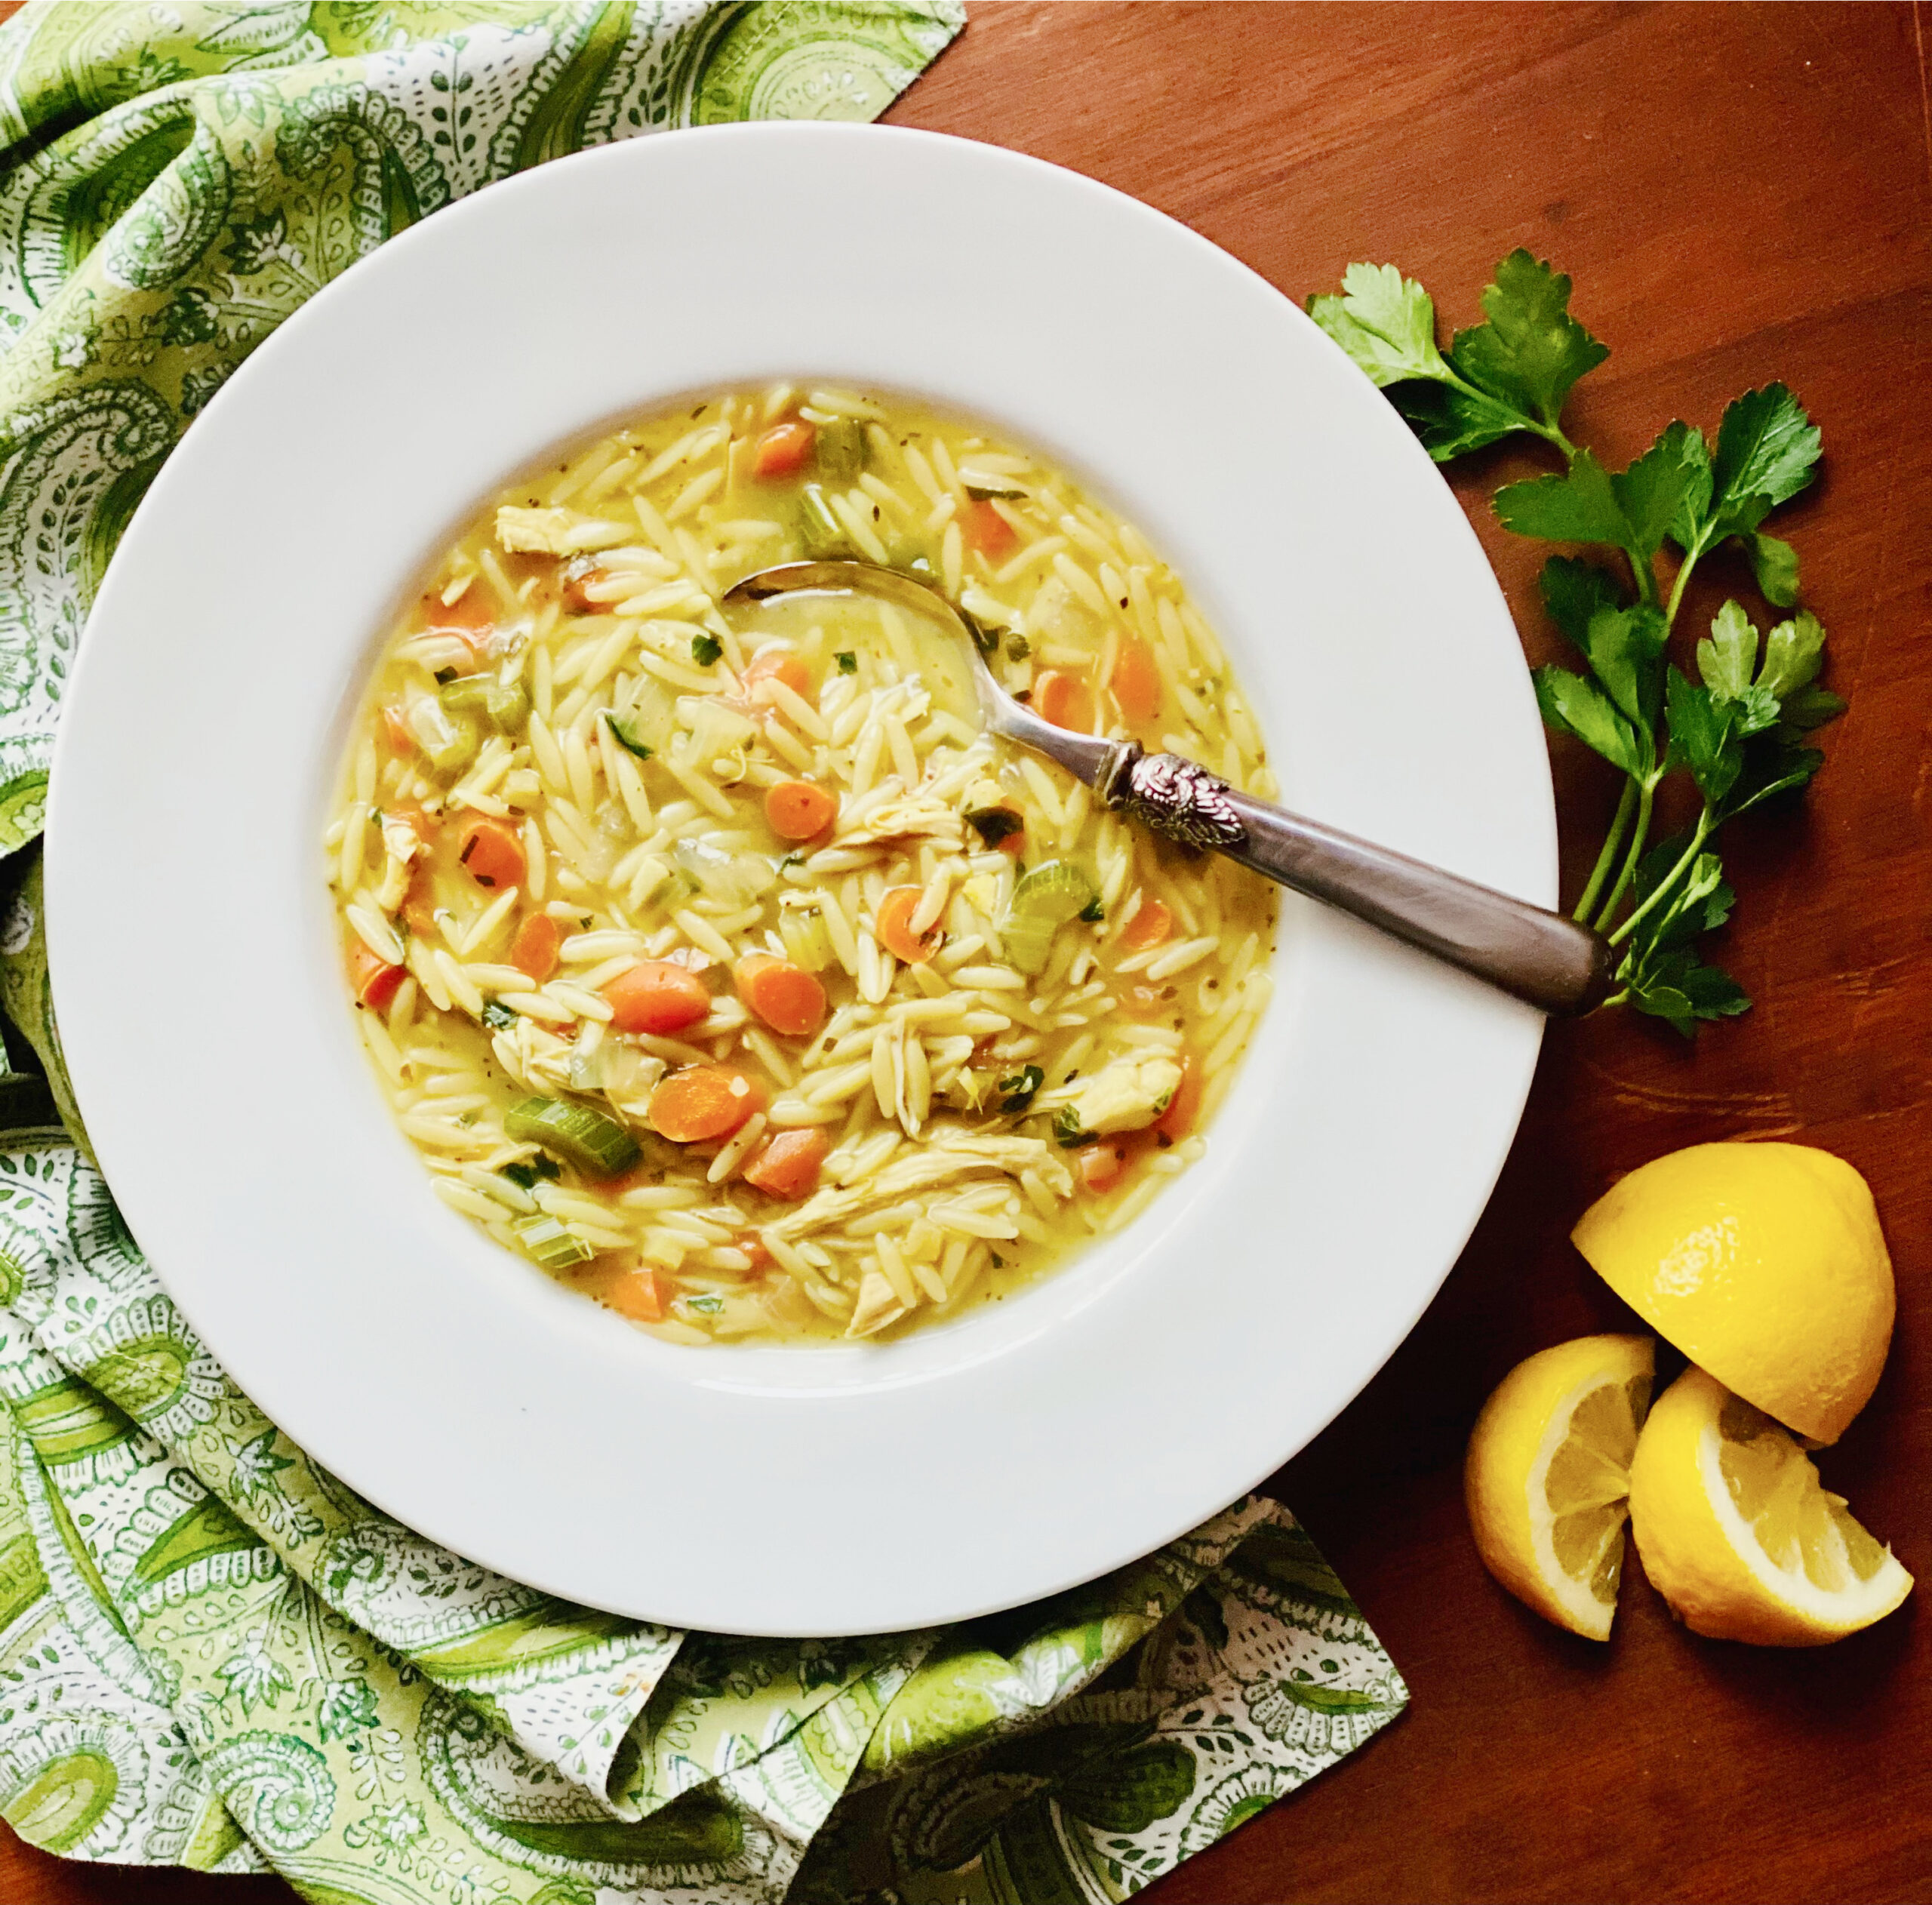 bowl of Chicken Orzo Soup with spoon, green napkin, lemon and parsley